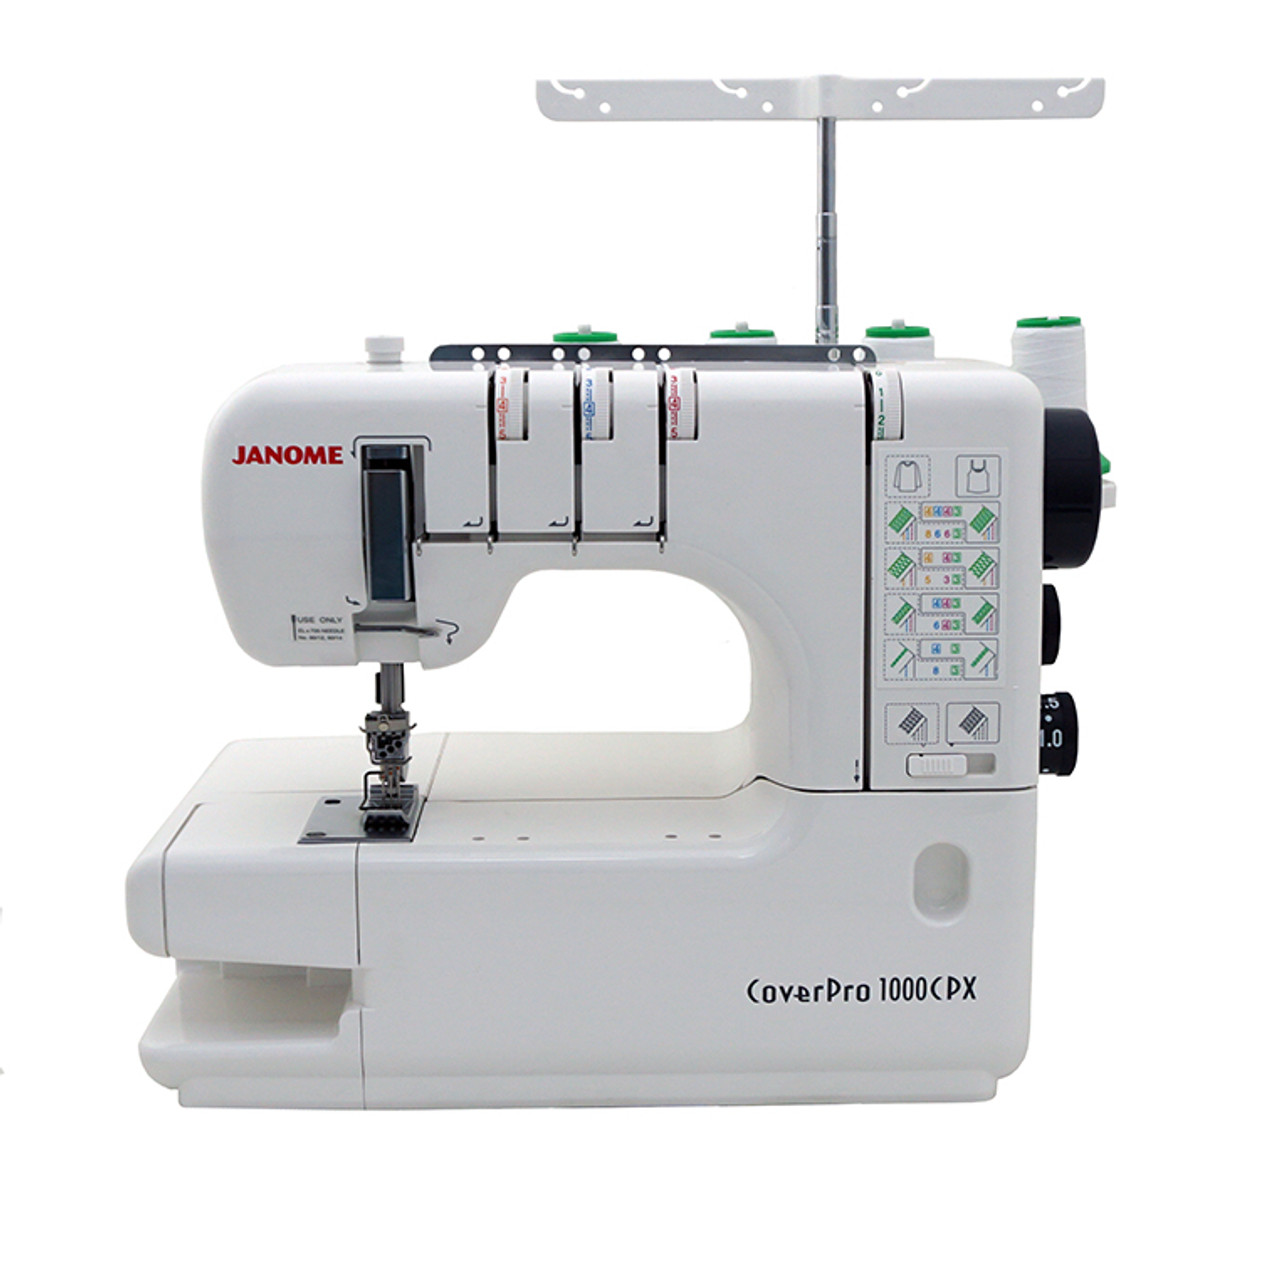 Janome Cover Pro 40CPX Coverstitch Machine Bonus Bundle 4040 Adorable Coverstitch Sewing Machine